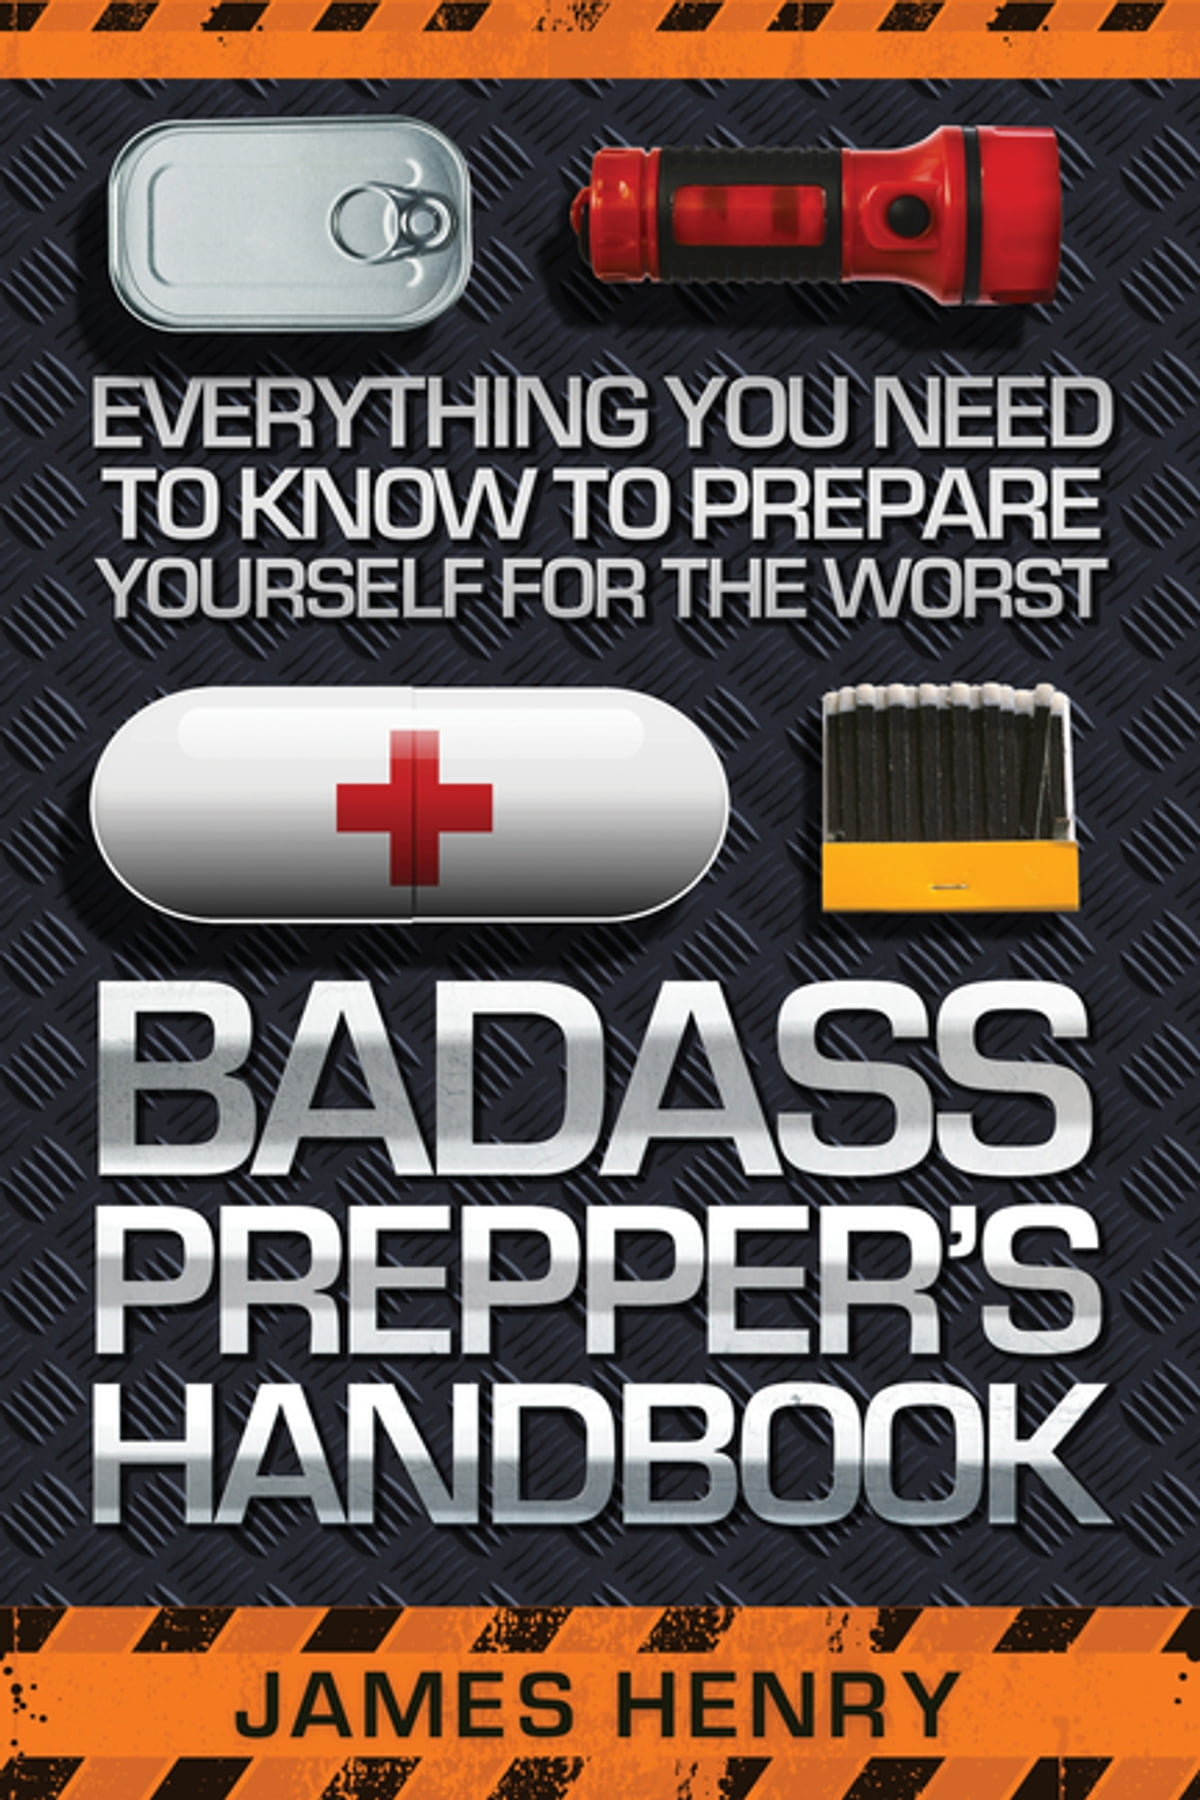 The B.A.D.A.S.S. Parent: Emergency First Aid Survival Skills